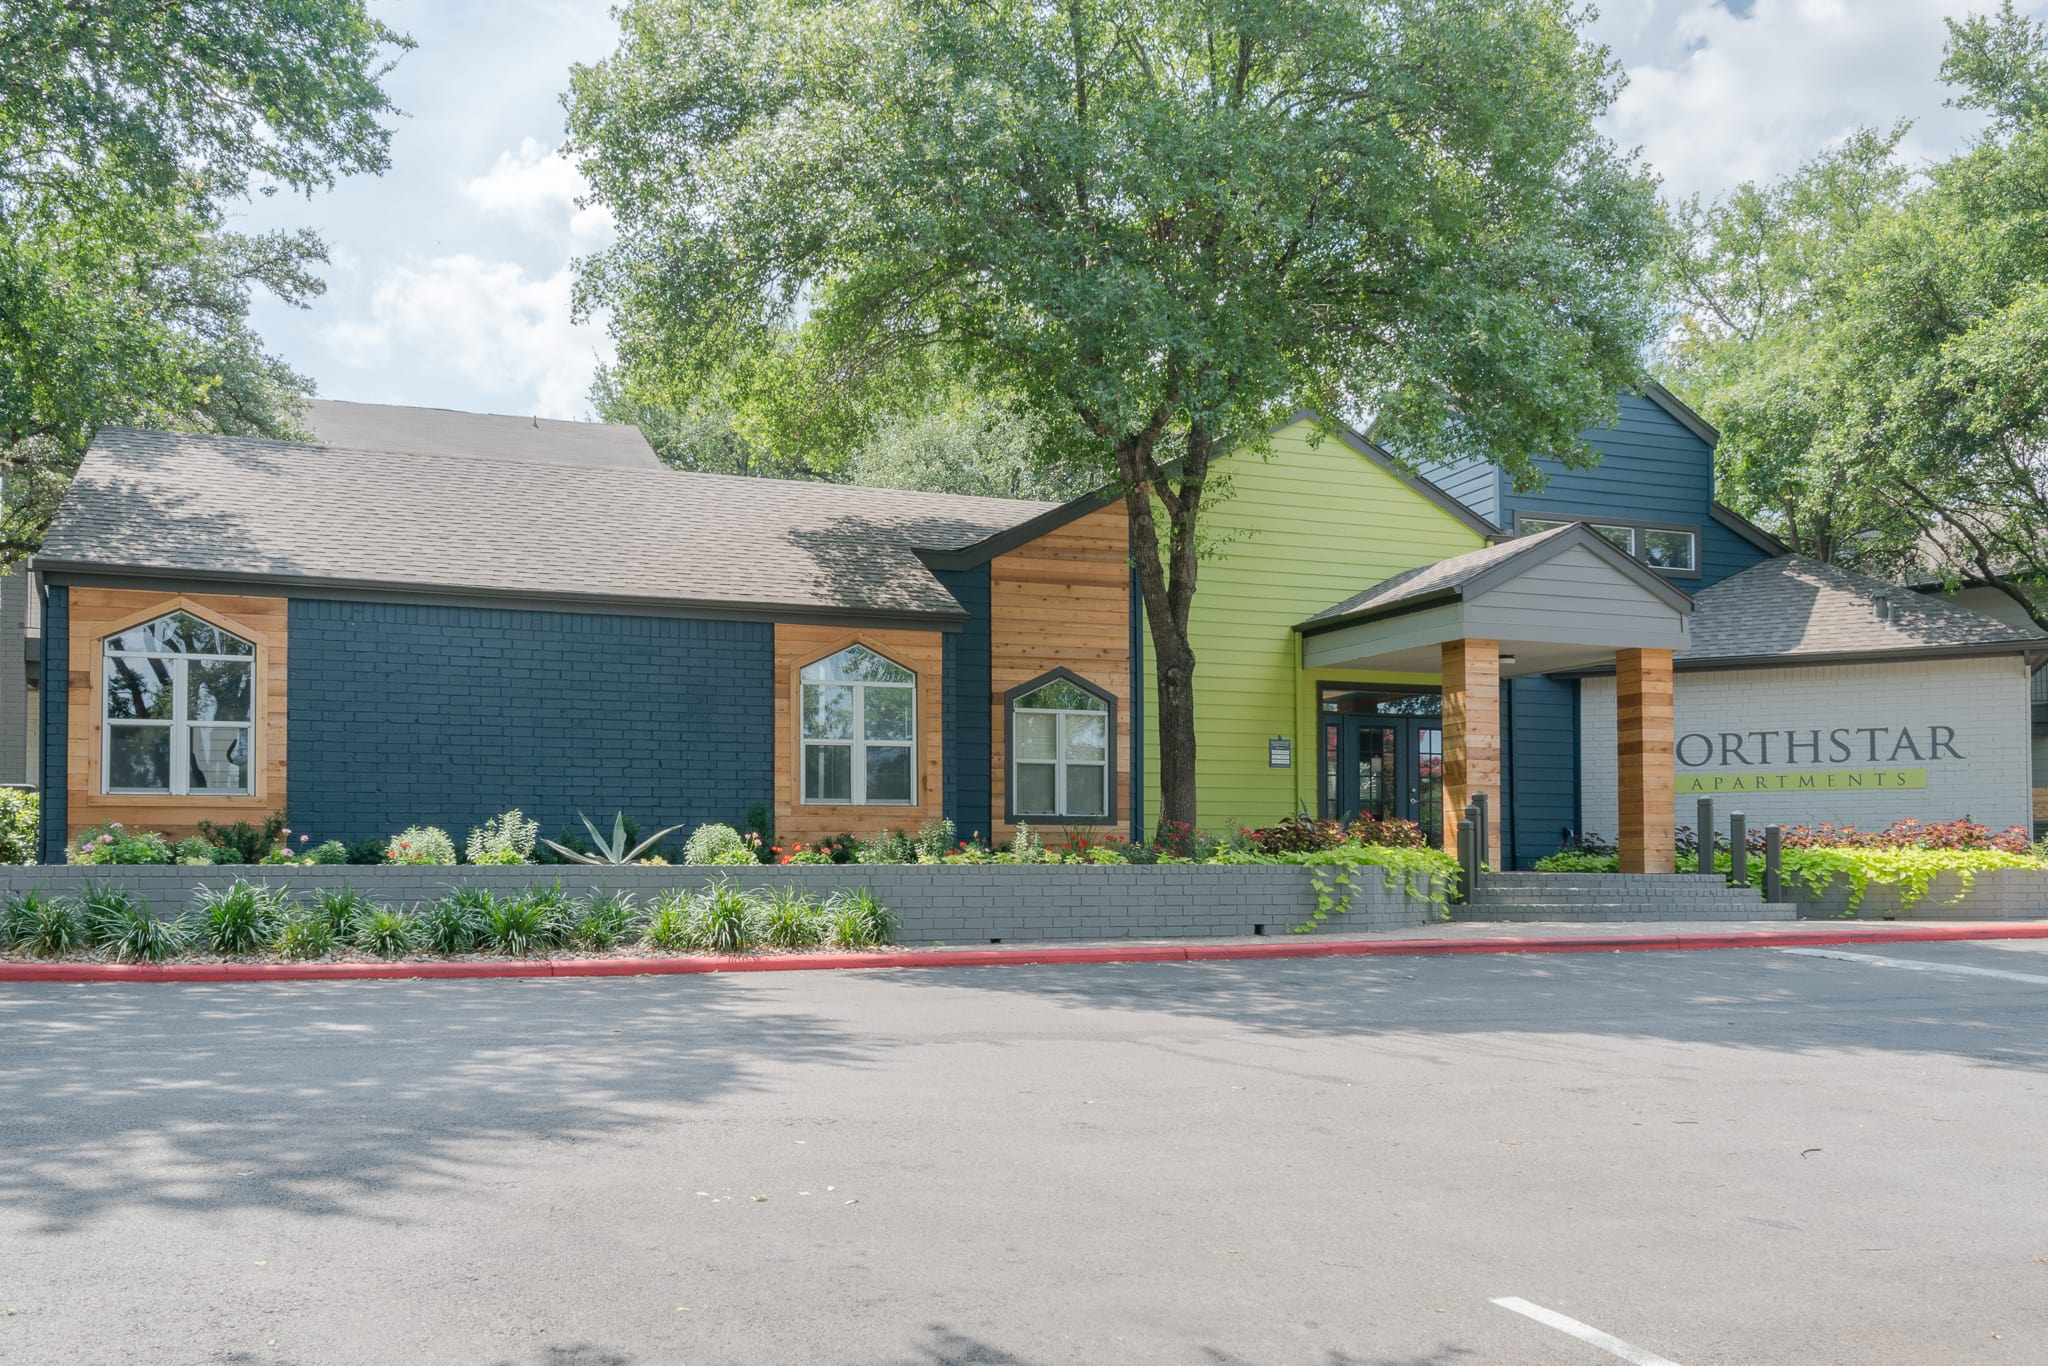 Exterior Clubhouse At Northstar Apartments In Austin TX